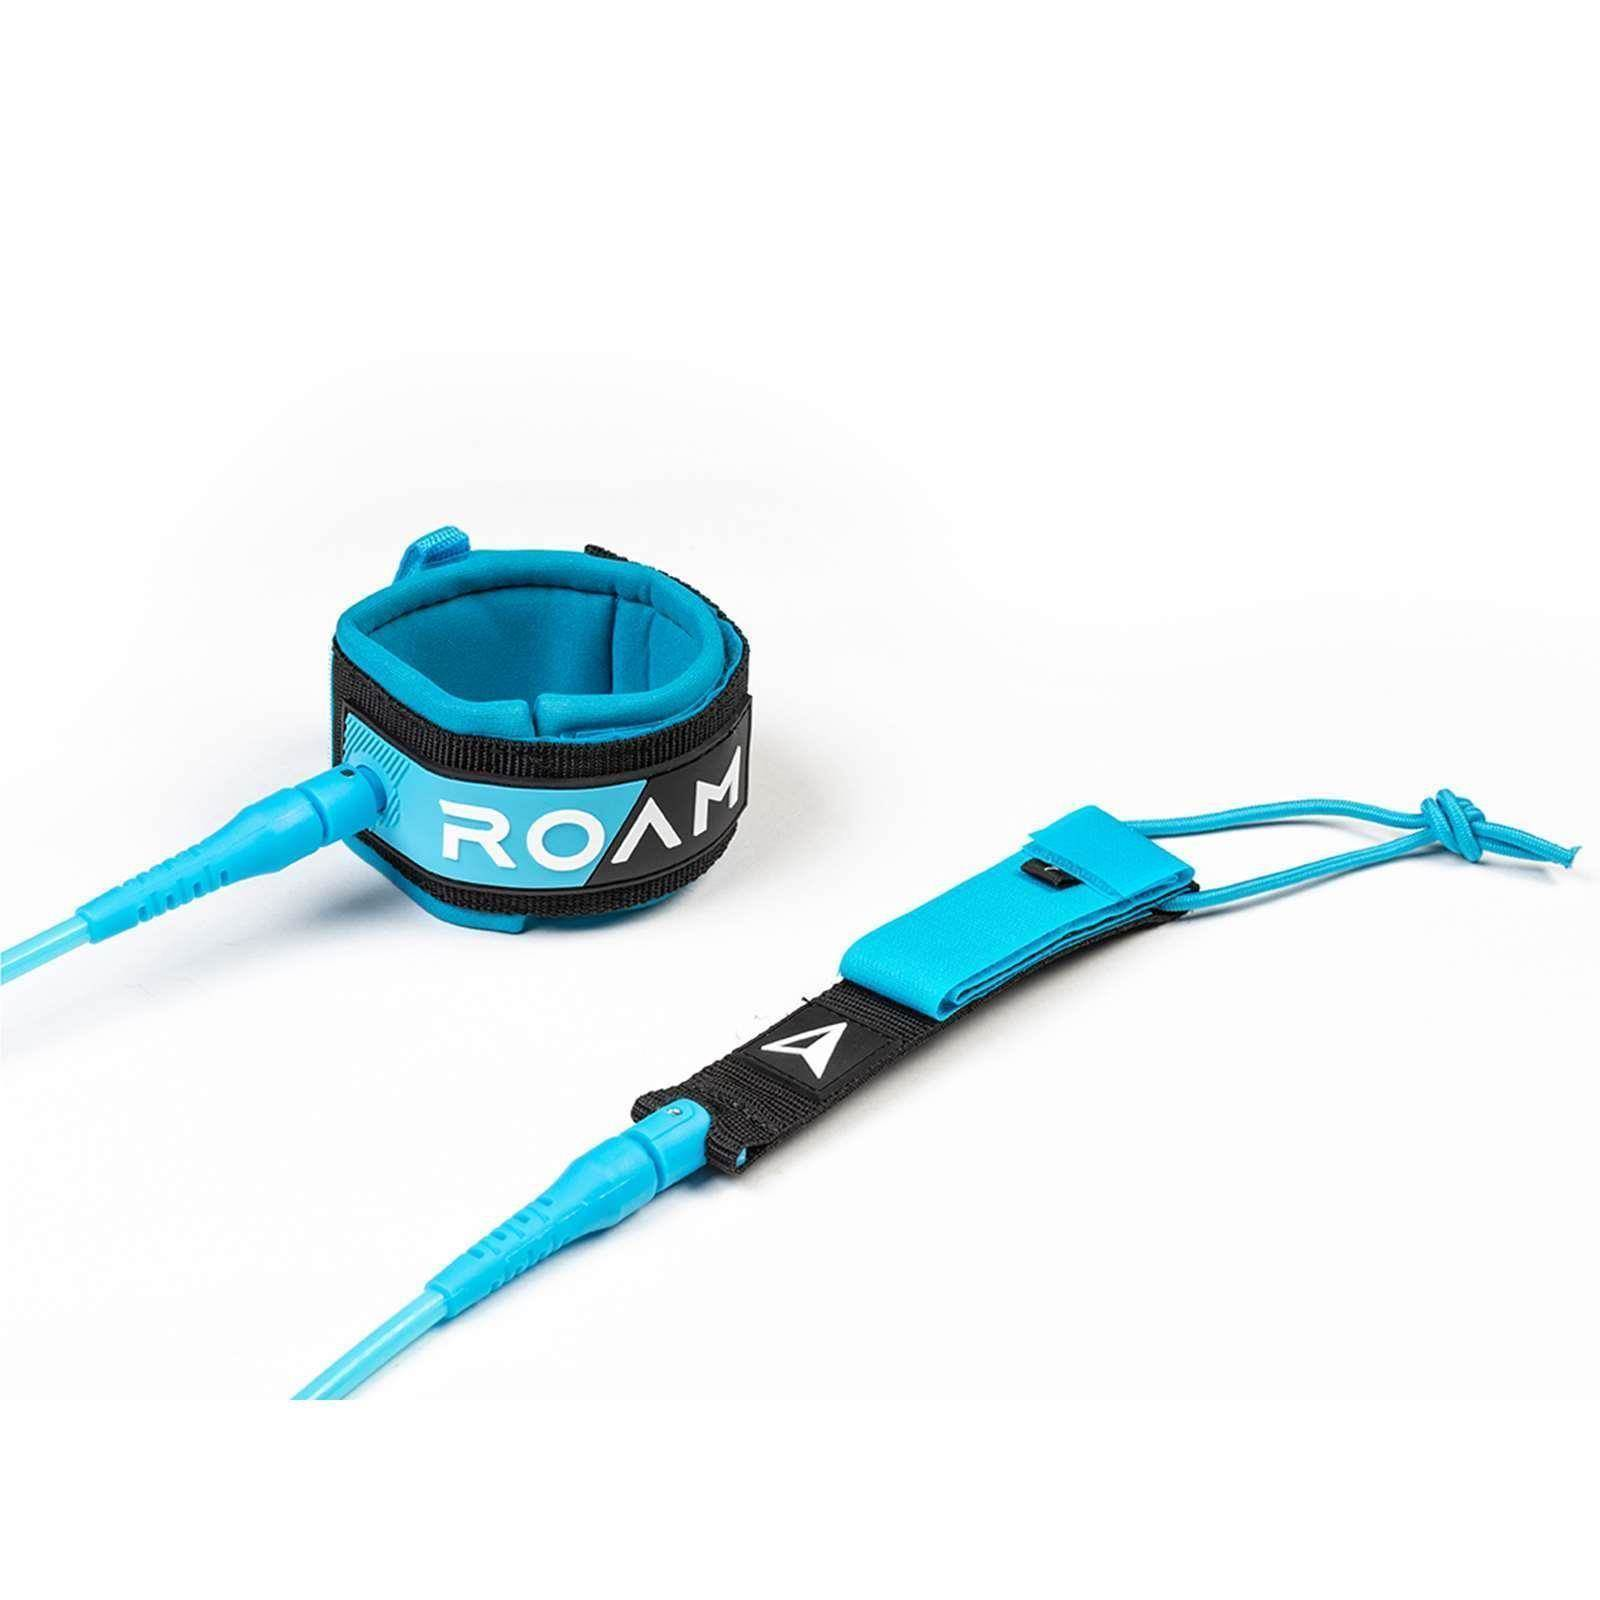 ROAM Surfboard Leash Premium 6.0 183cm 7mm Blau